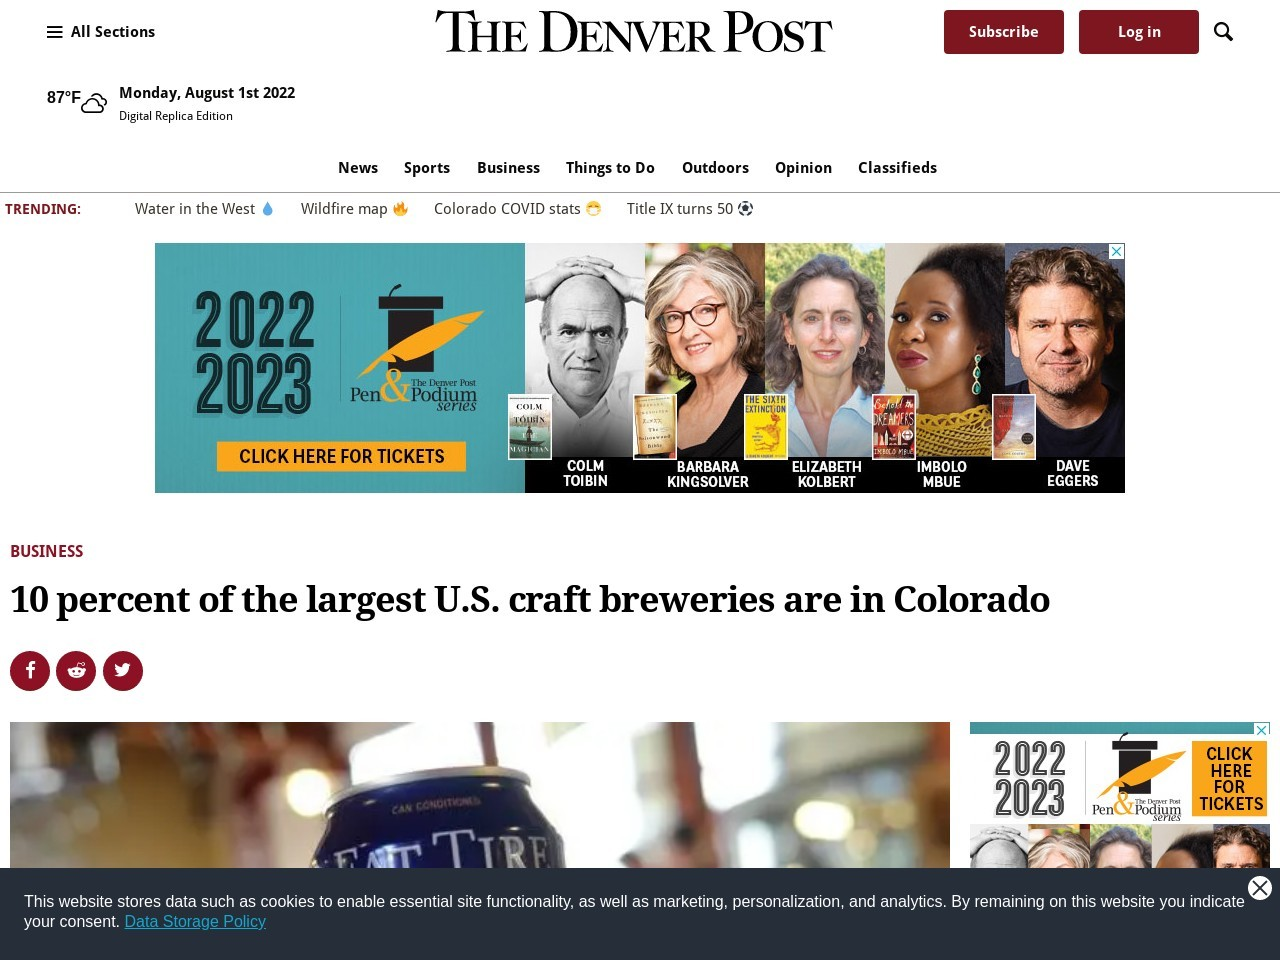 10 percent of the largest U.S. craft breweries are in Colorado